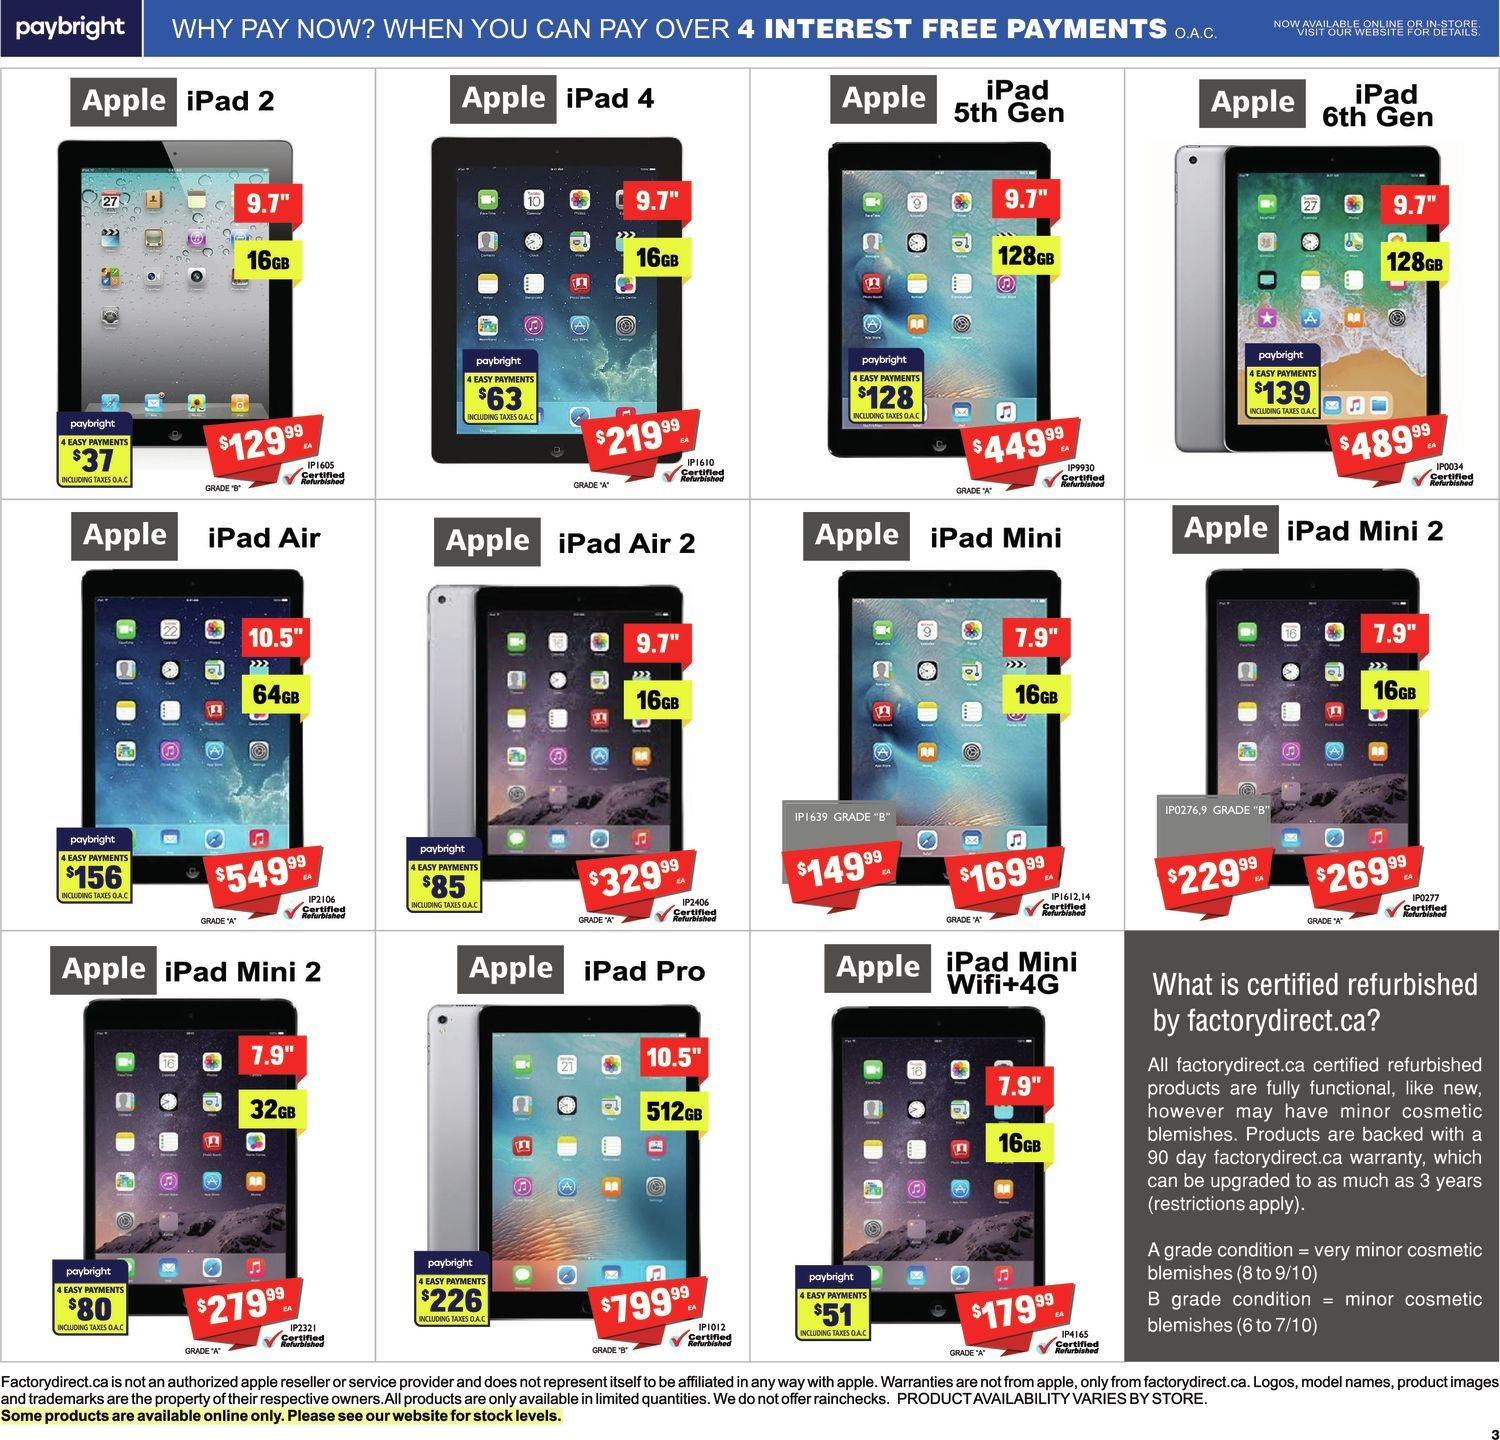 FactoryDirect - Massive Inventory Blowout! - Page 13